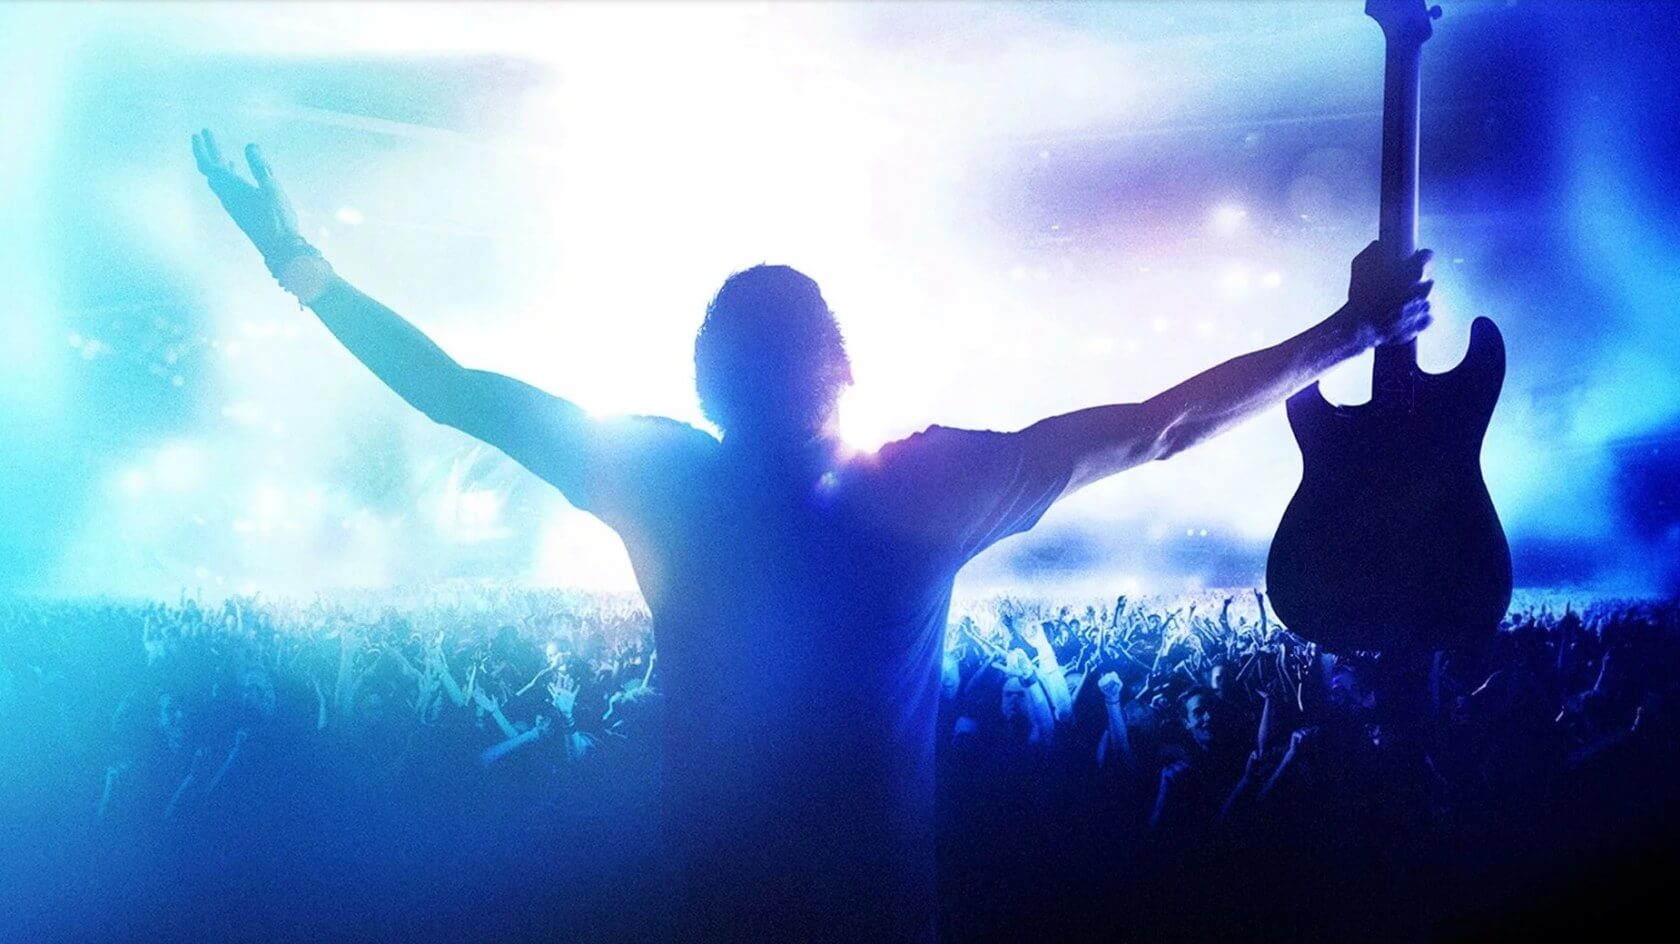 In response to lawsuit, Activision is offering refunds on Guitar Hero Live